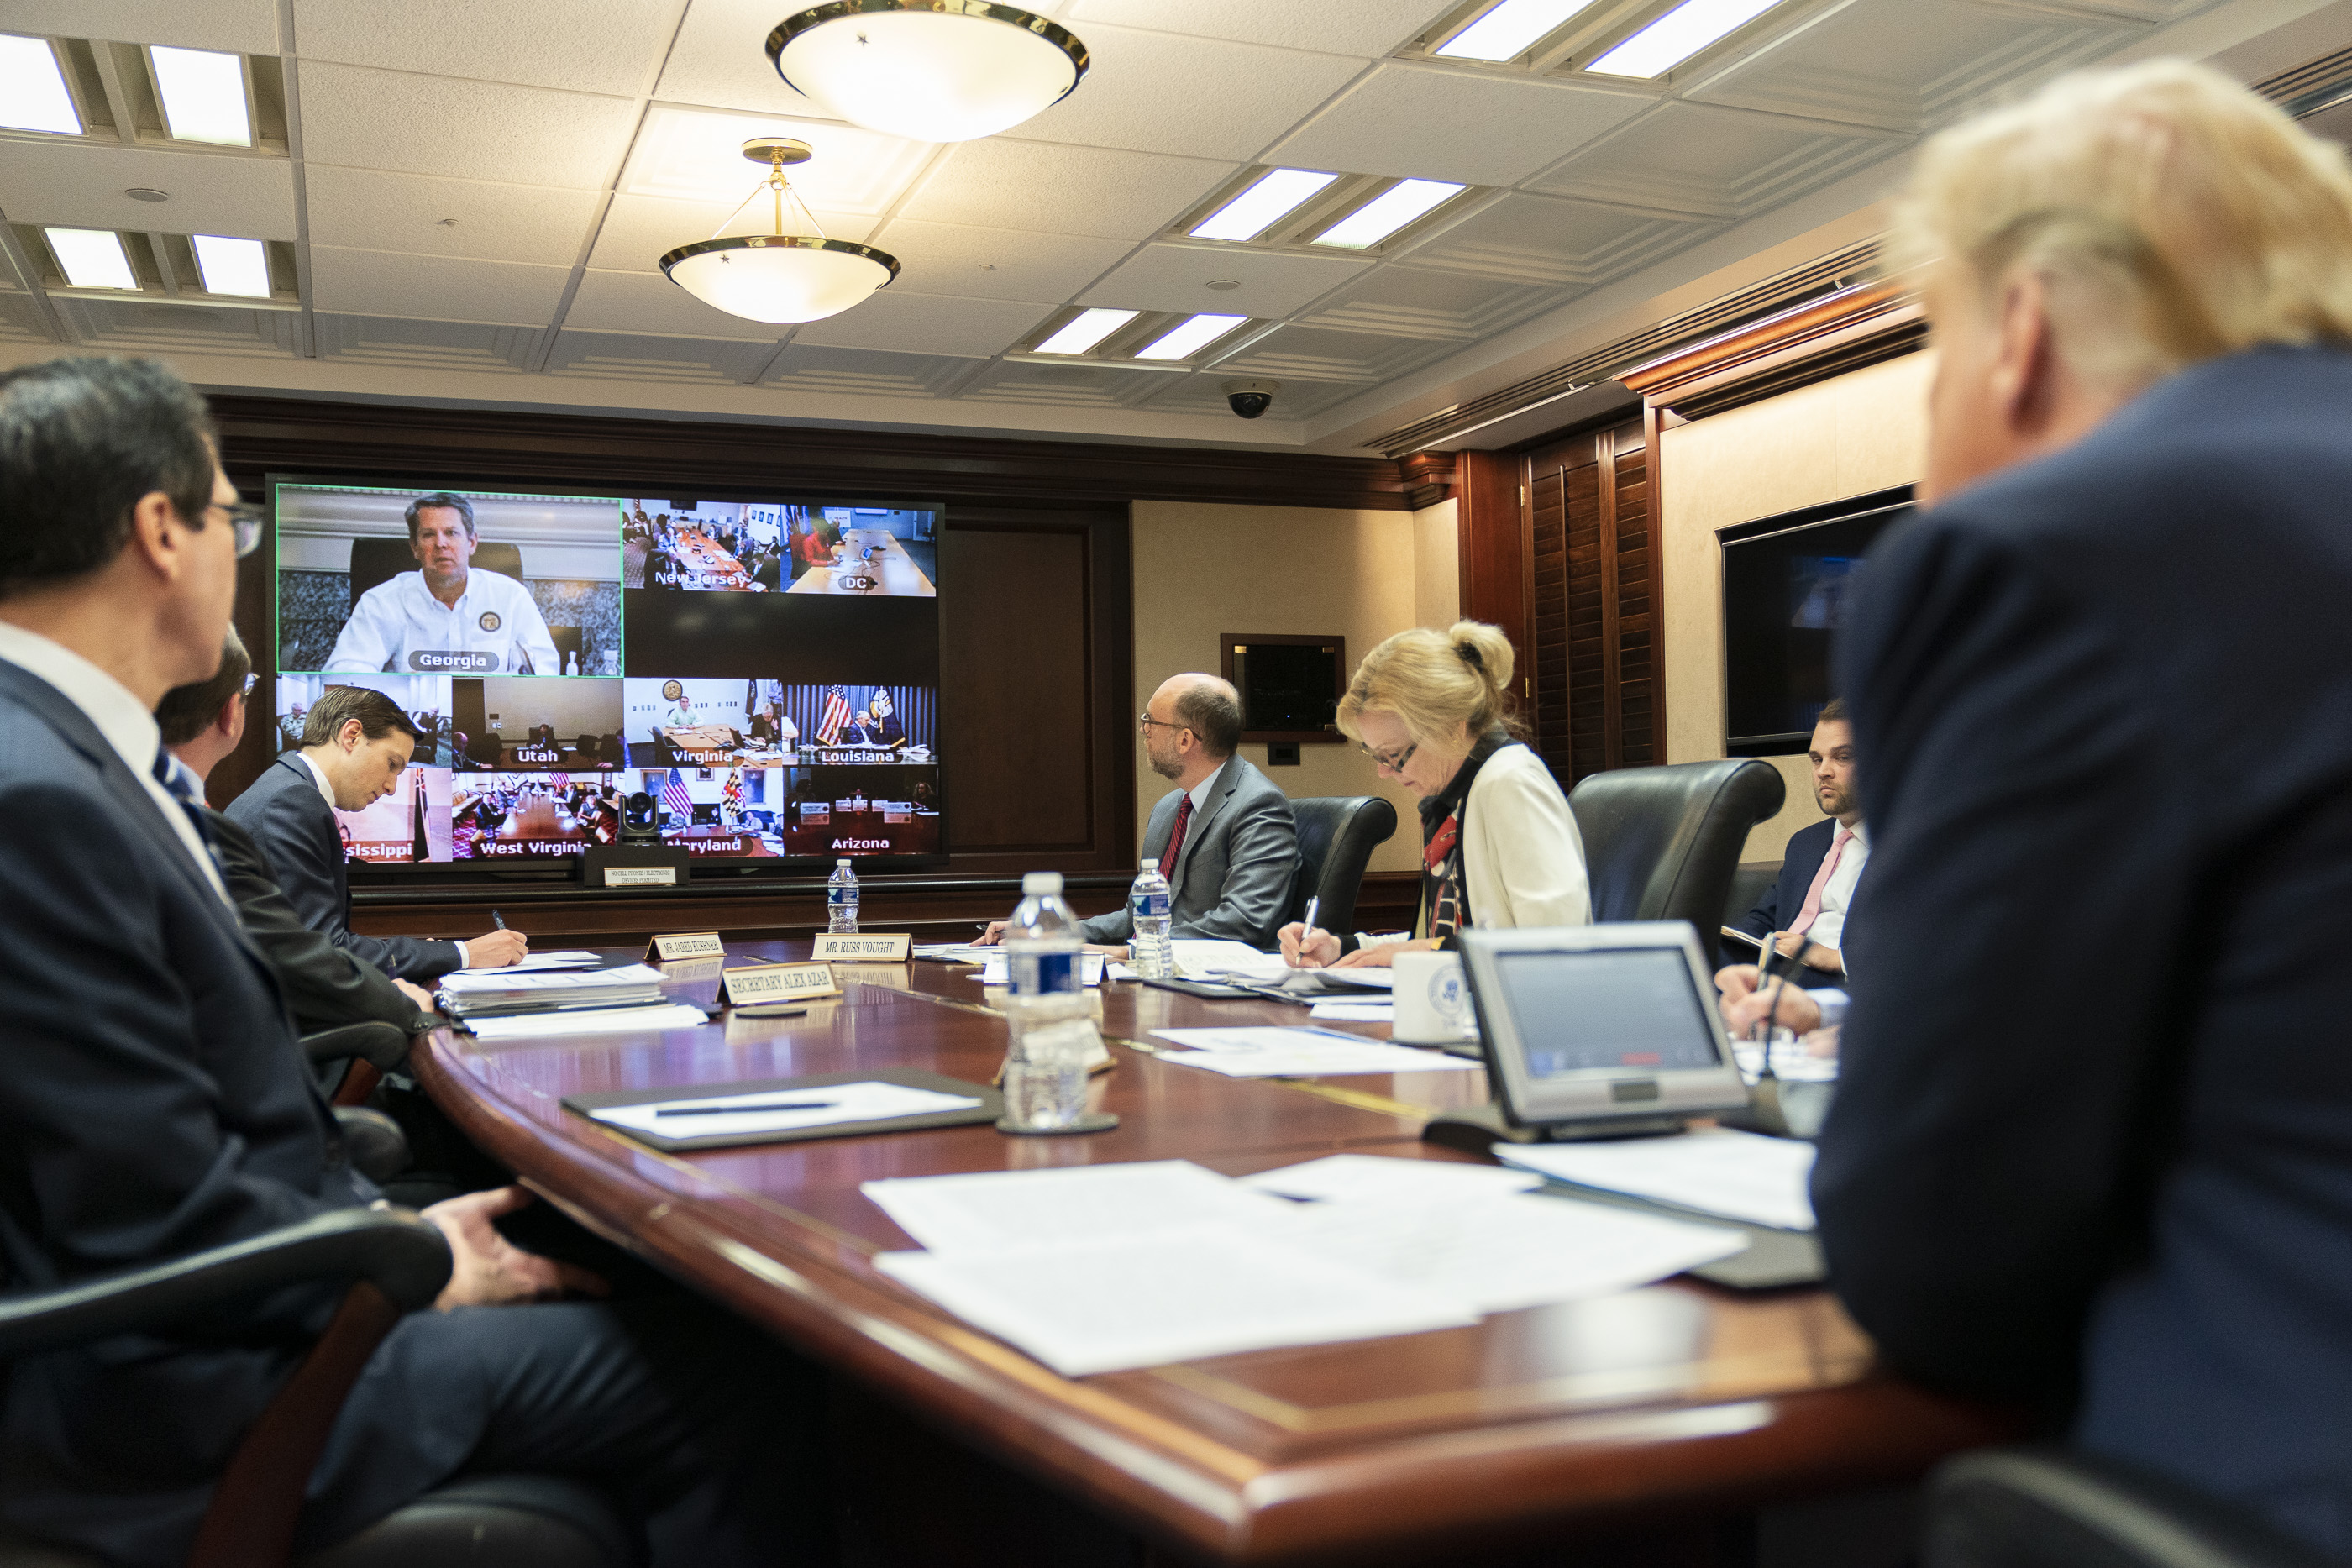 File:Governors' Video Teleconference on Partnership for the COVID-19 Response (49701994576).jpg - Wikimedia Commons